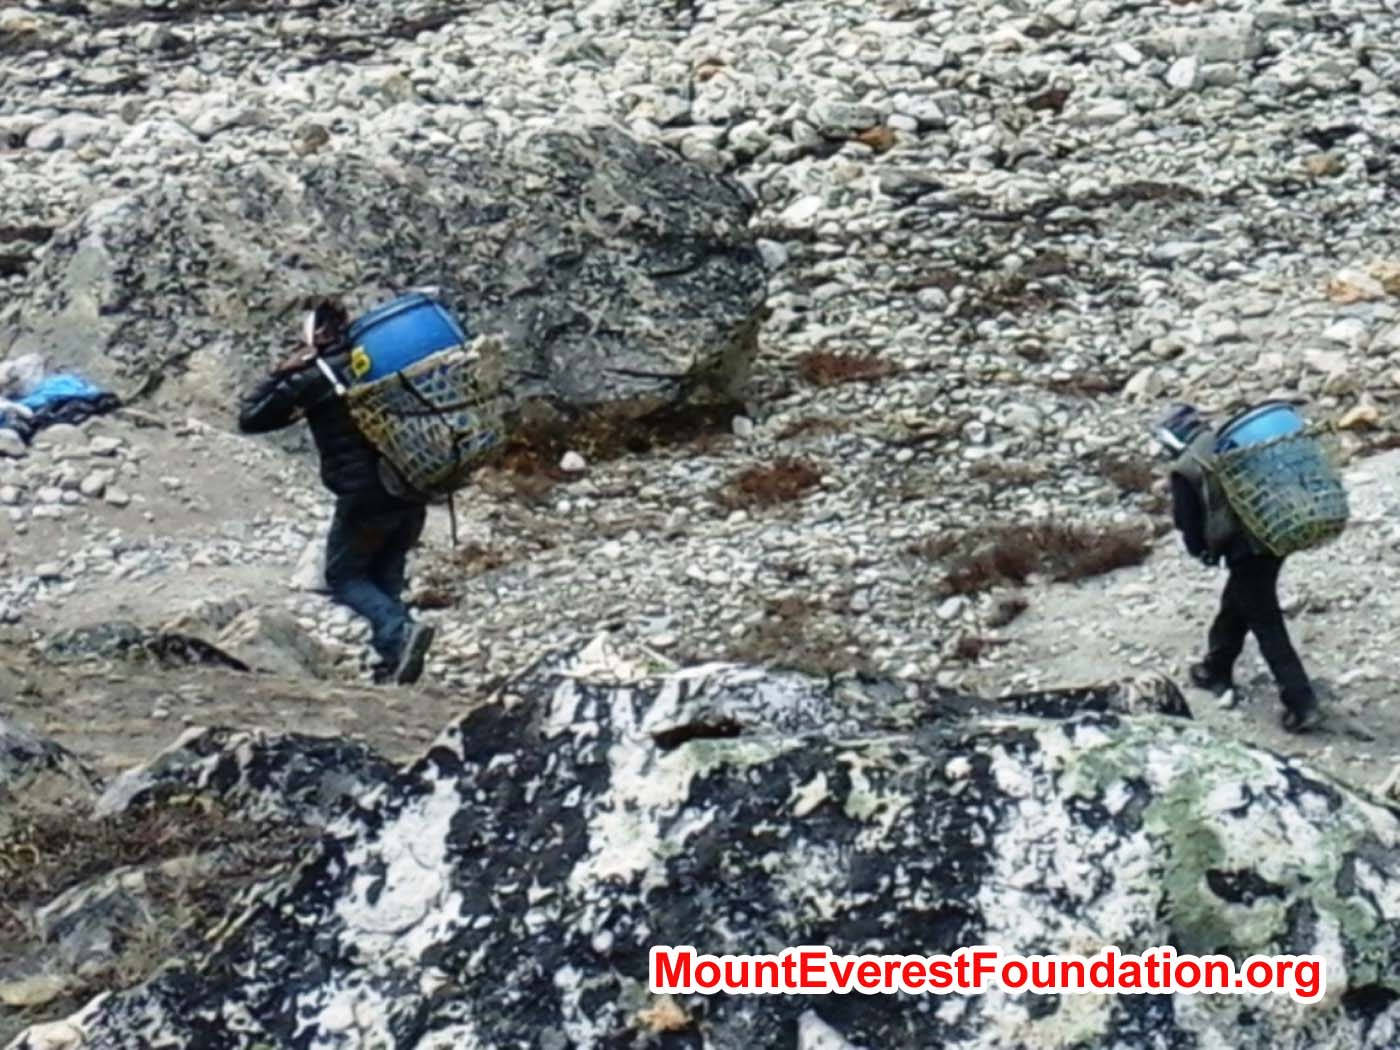 > Porters carrying human waste drums from Mount Everest base camp to be dumped into the pits at Kyakpa Yul